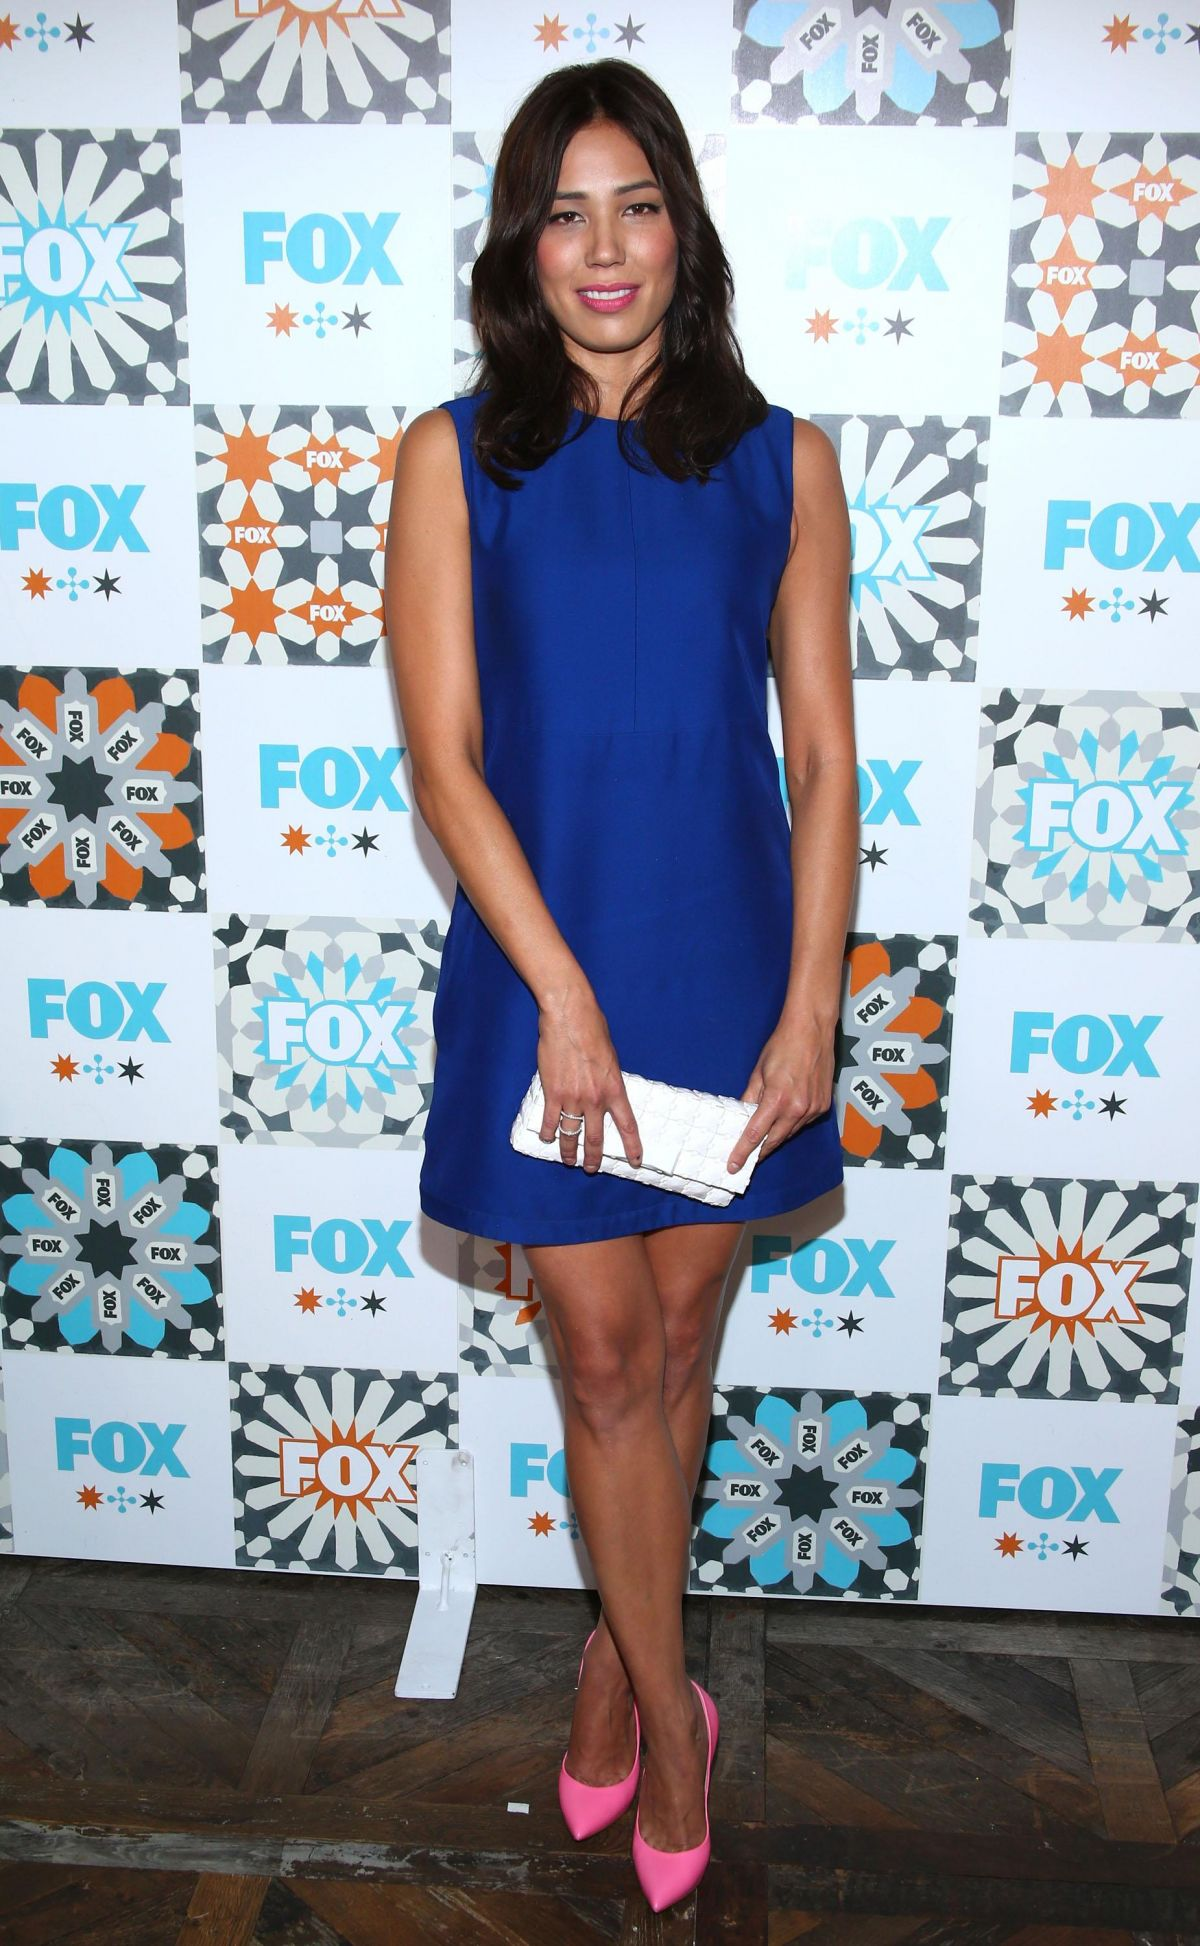 Michaela Conlin with a weight of 58 kg and a feet size of 8.5 in favorite outfit & clothing style